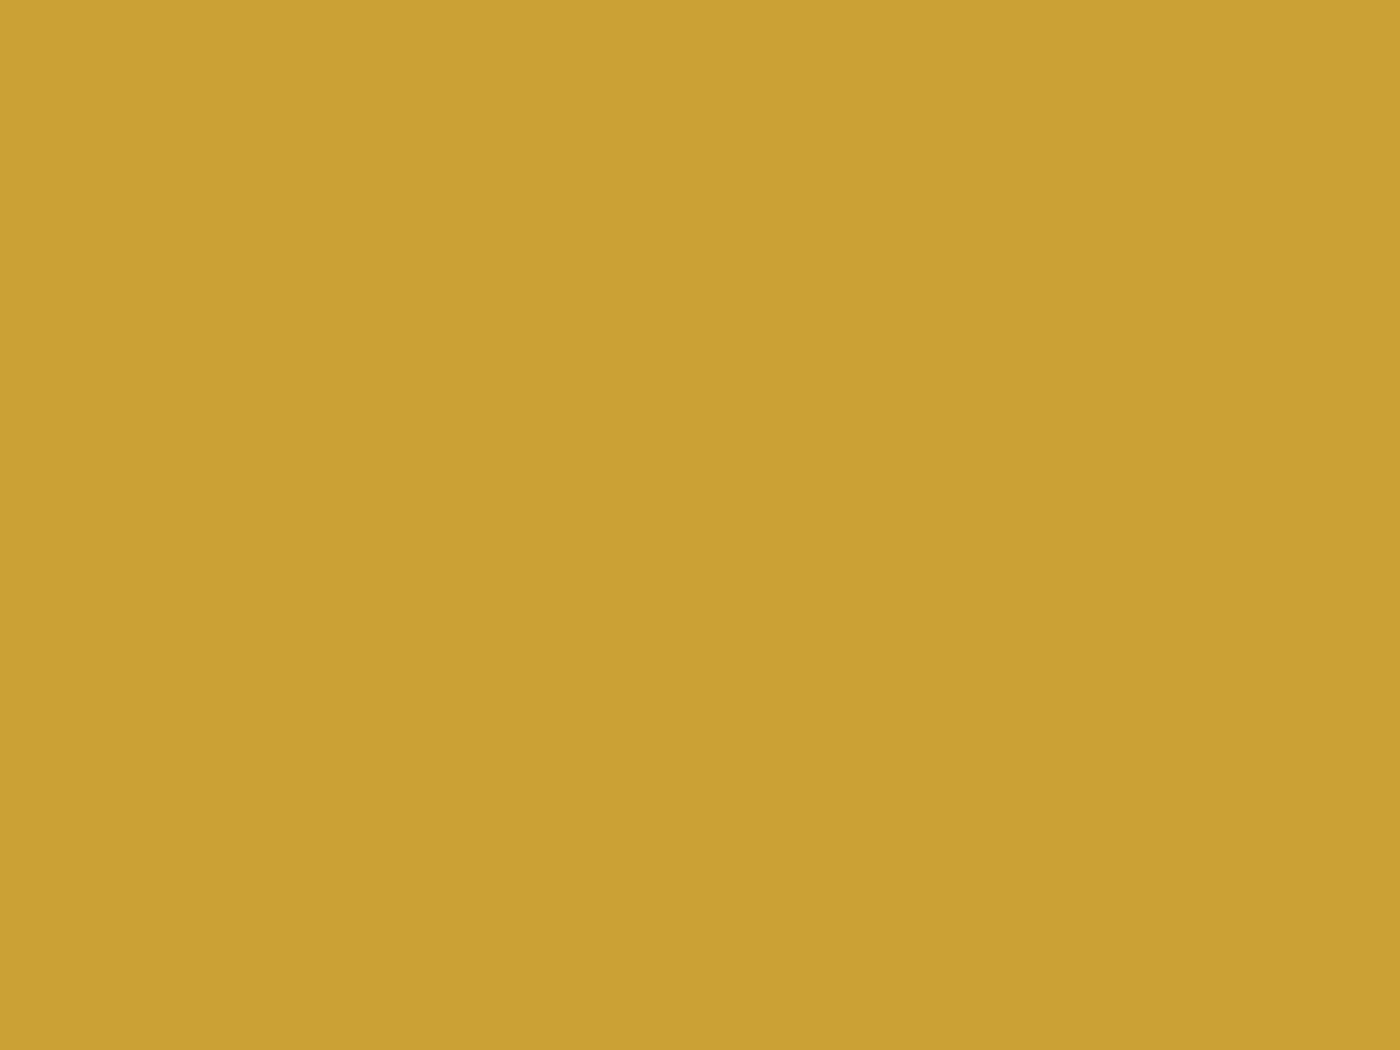 1400x1050 Satin Sheen Gold Solid Color Background